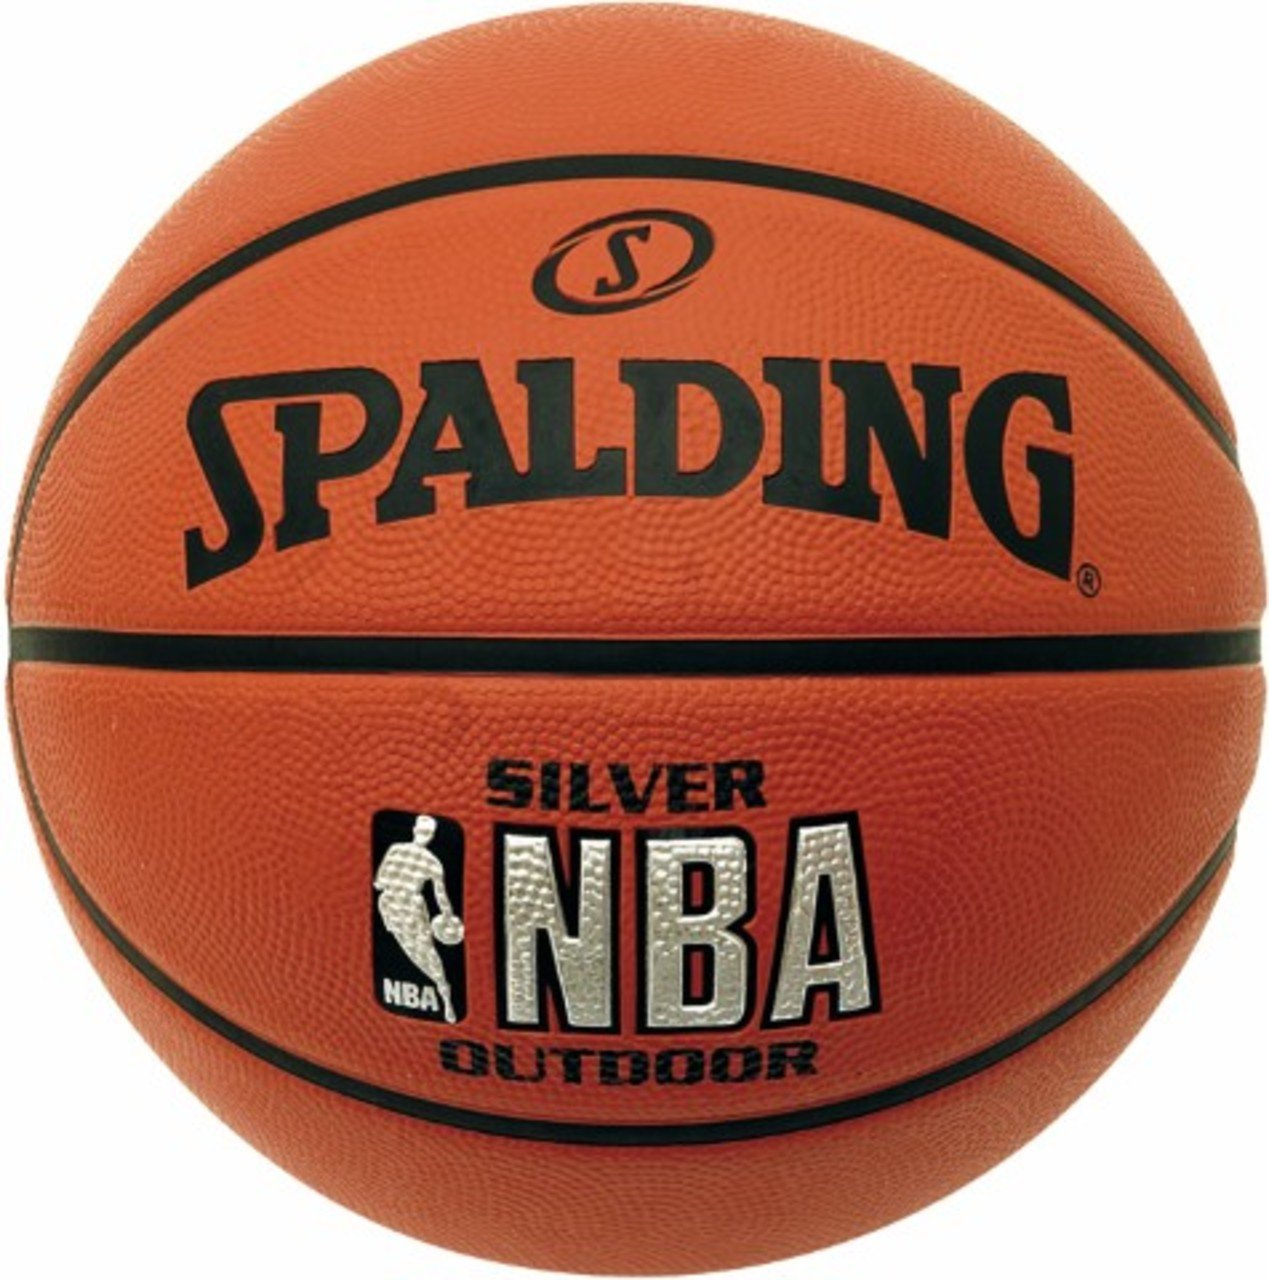 Basket-ball Sports Spalding NBA exté rieur jouer Balle SENIOR pratique Taille officielle 7